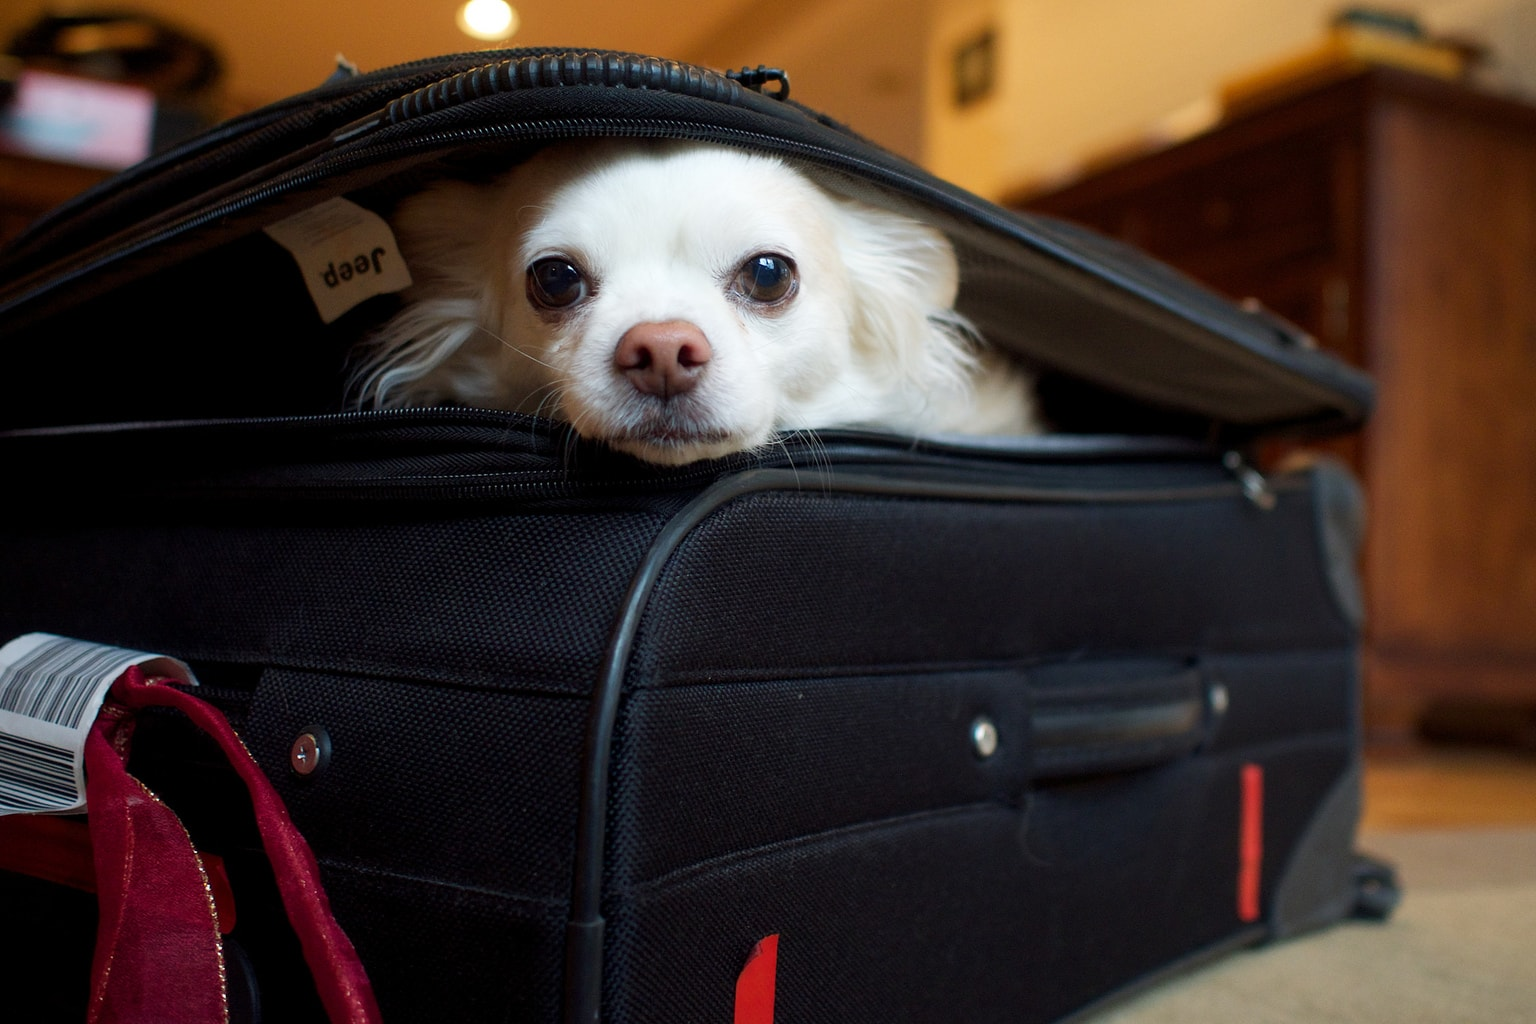 dog in suitcase packing